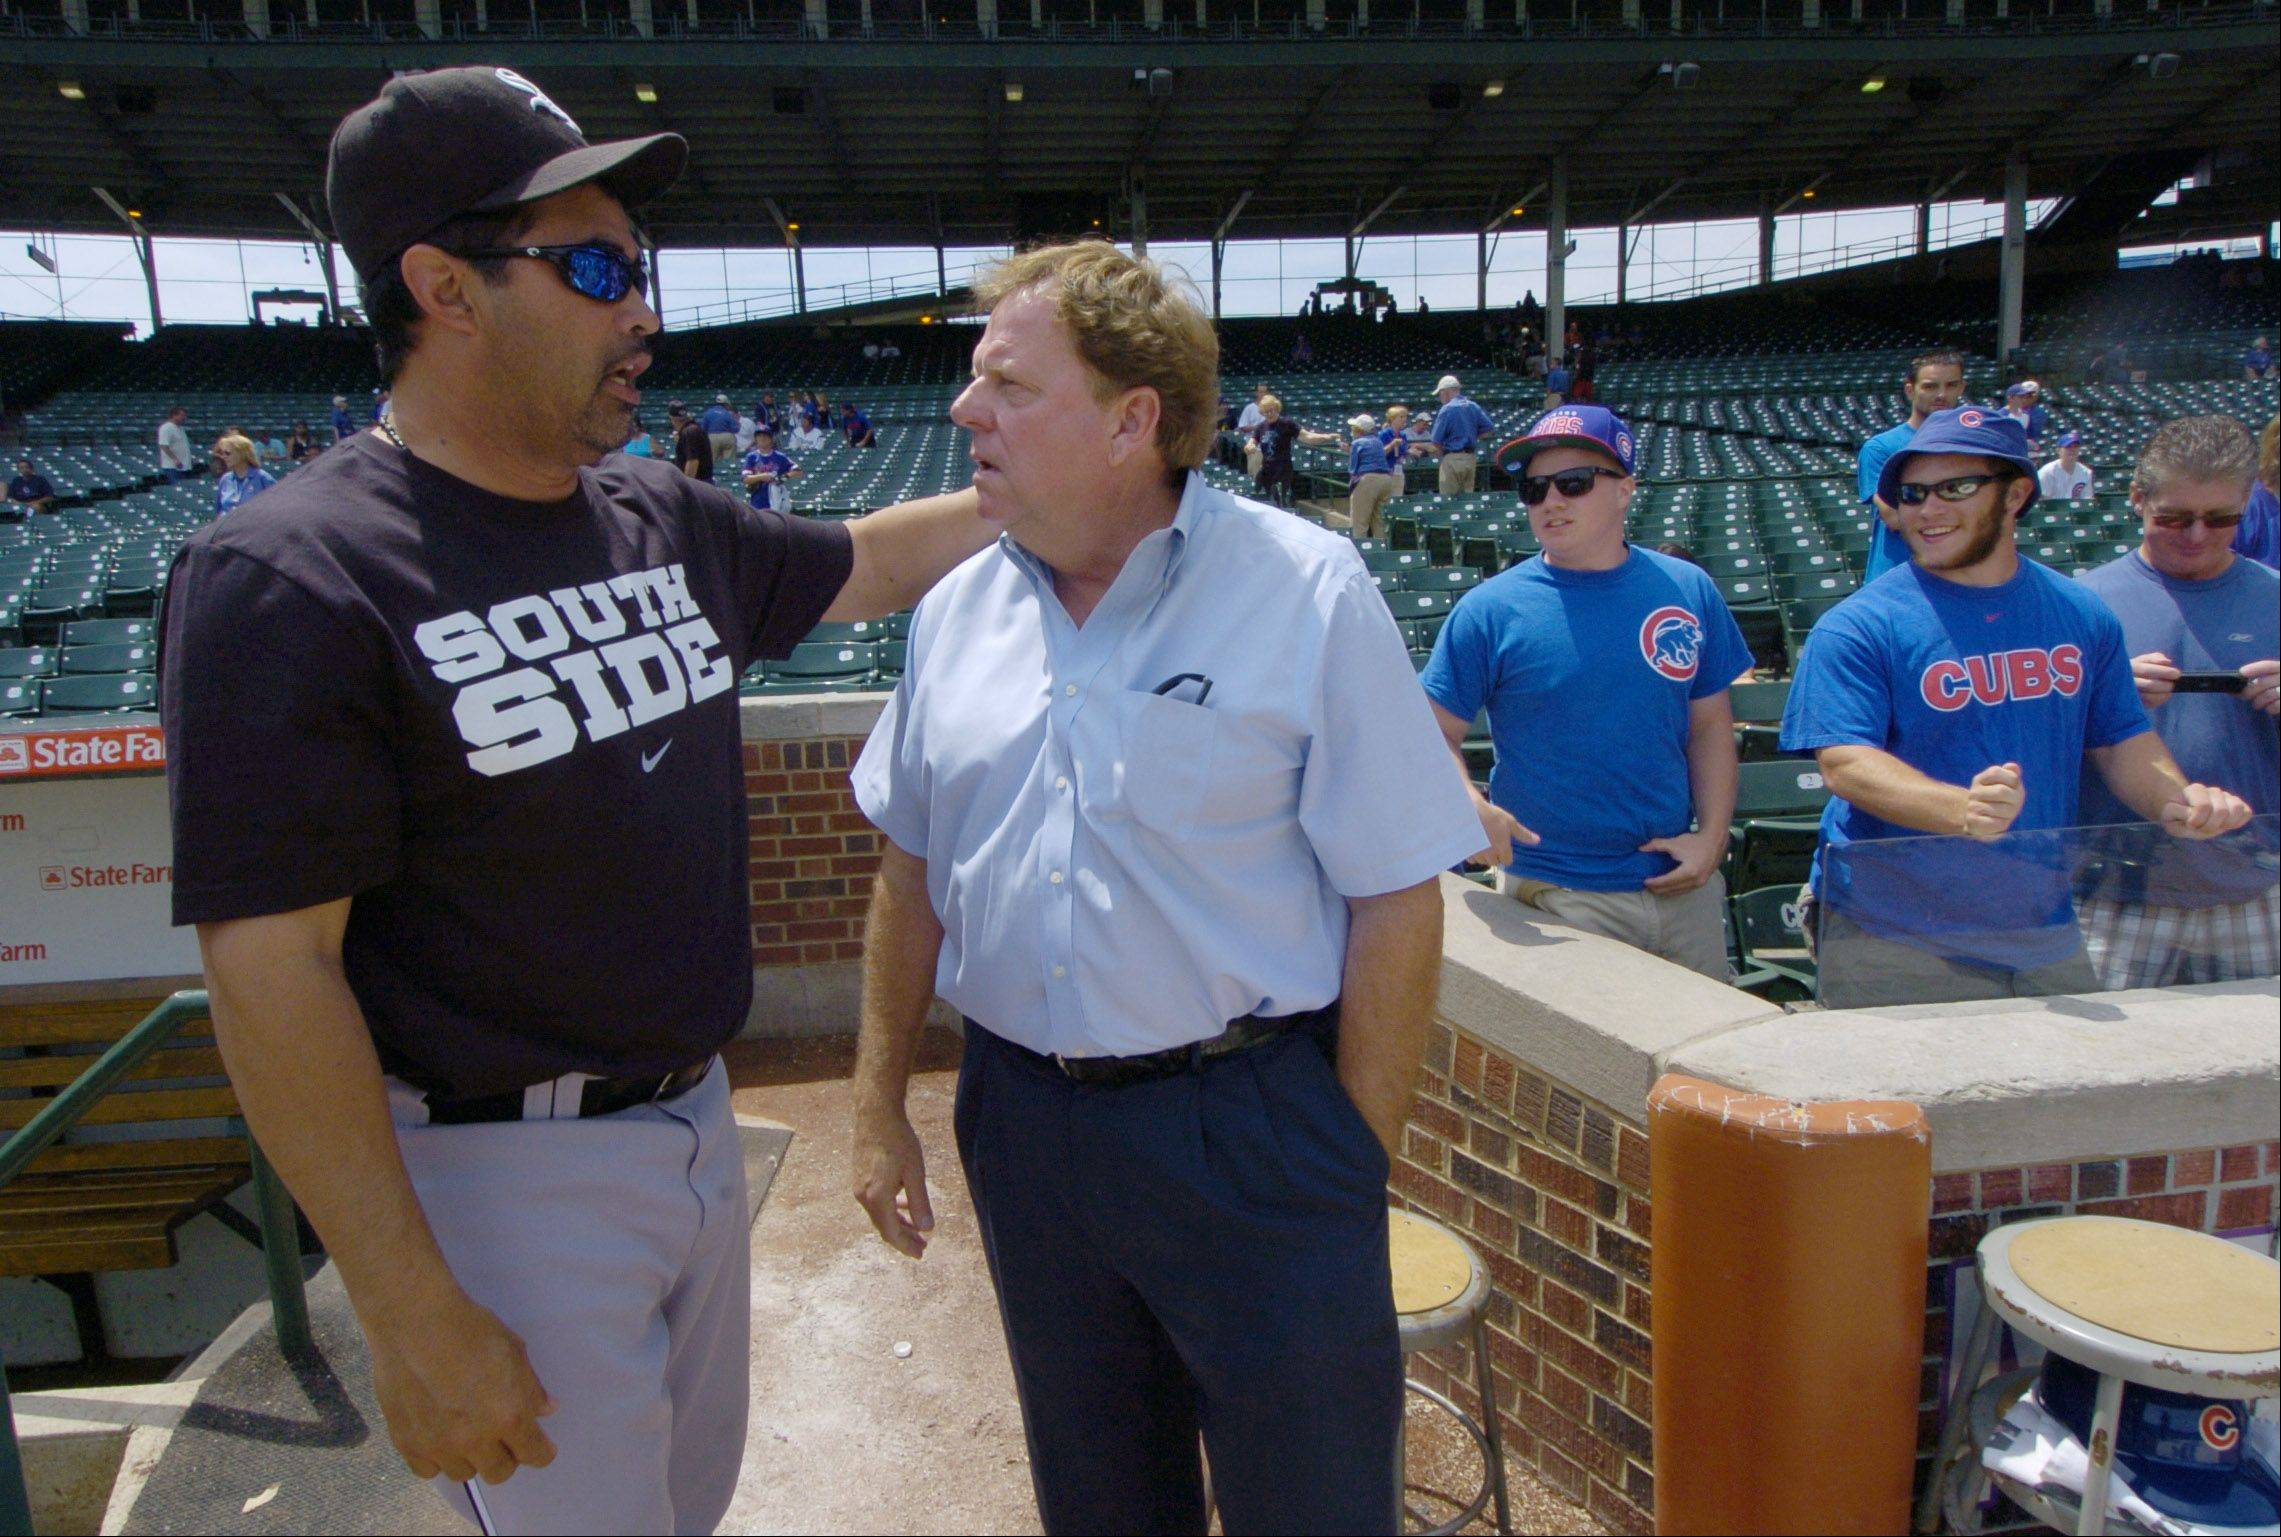 White Sox manager Ozzie Guillen talks with Cubs General Manager Jim Hendry before Sunday's game at Wrigley Field.